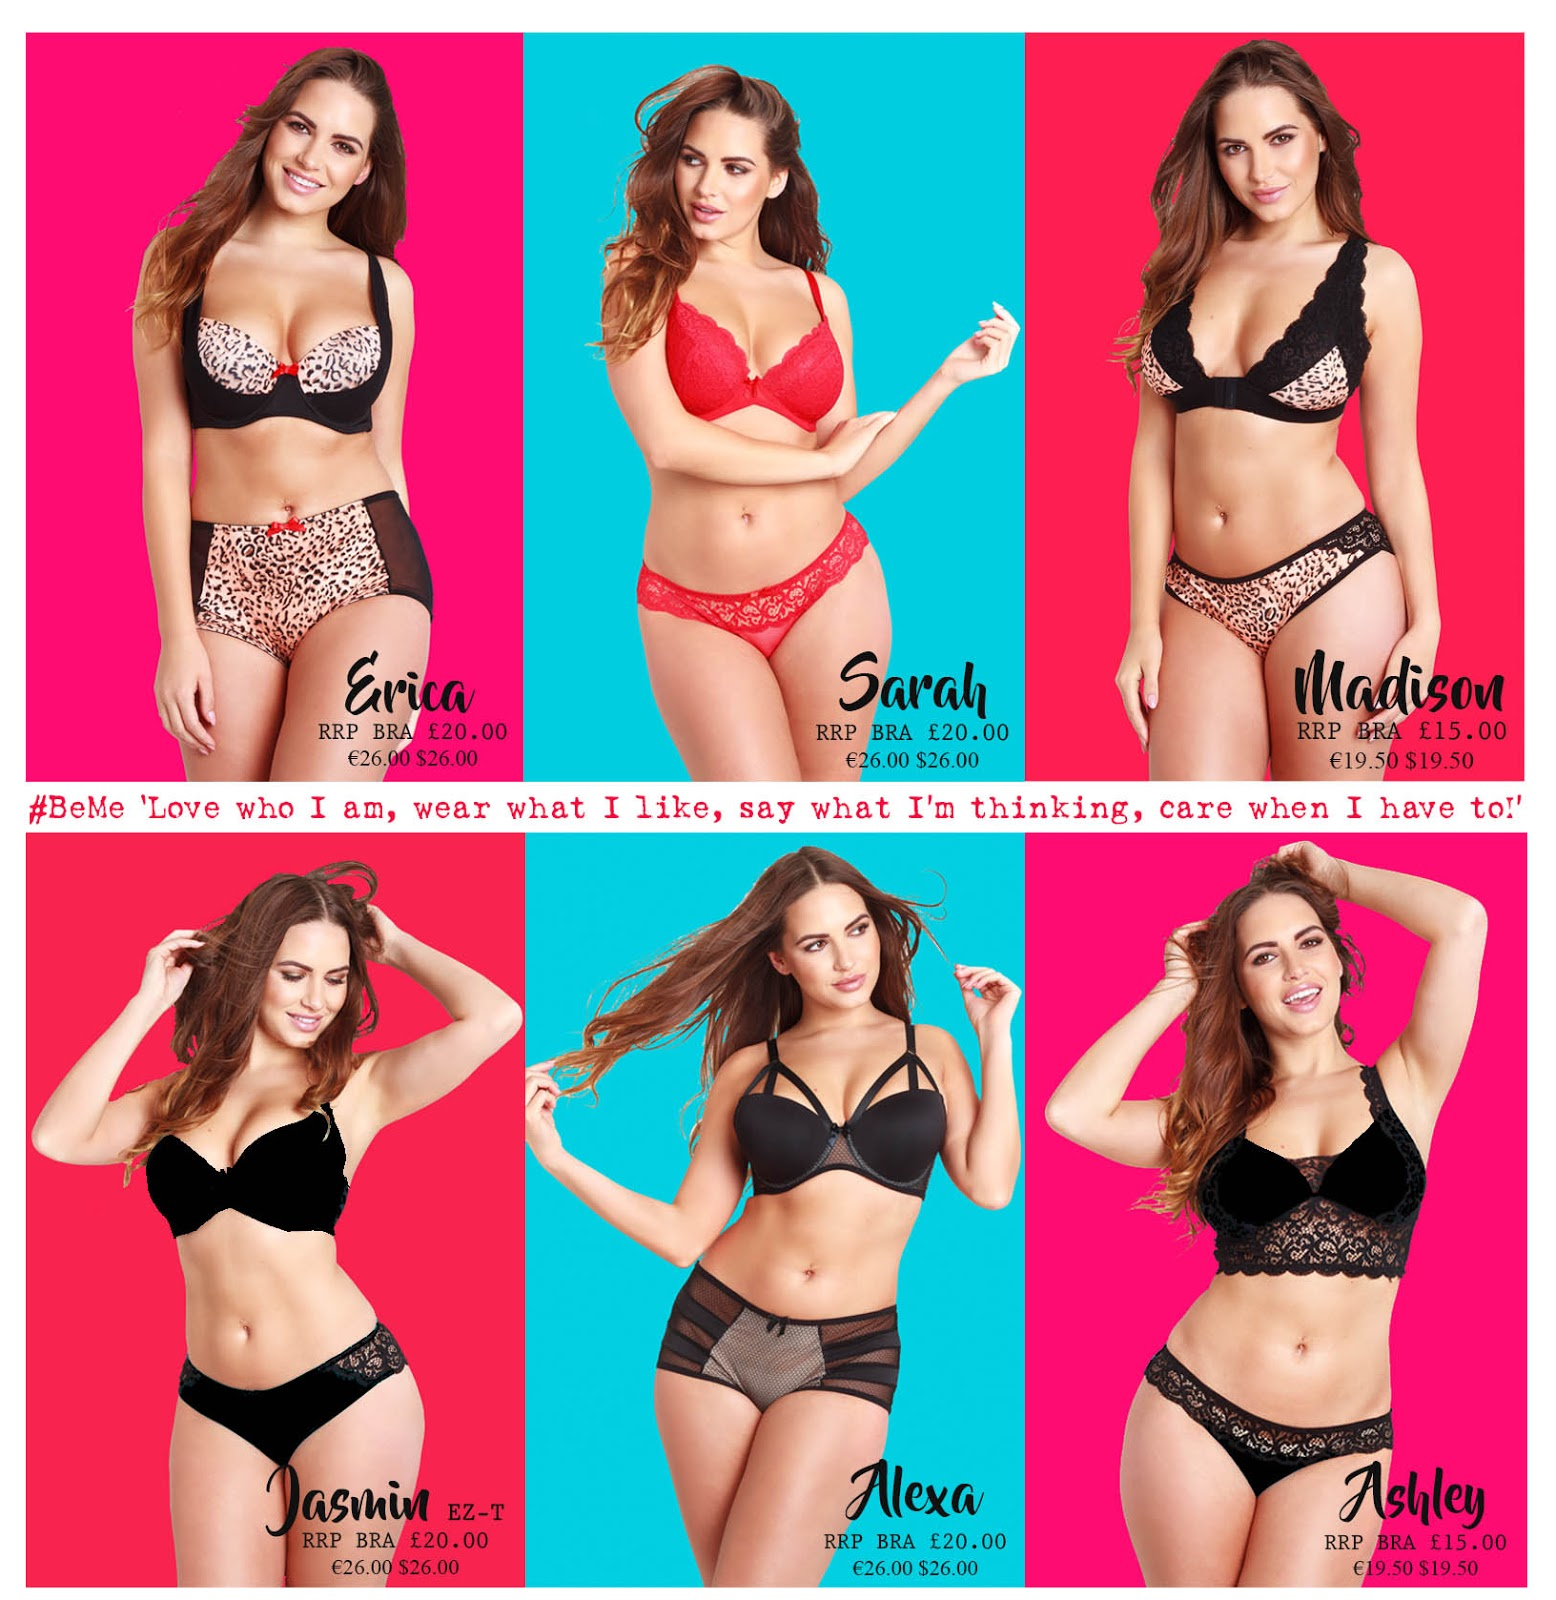 TUTTI-ROUGE-LAUNCHES-ROUGETTE-DIFFUSION-RANGE-FULLER-BUST // WWW.XLOVELEAHX.CO.UK